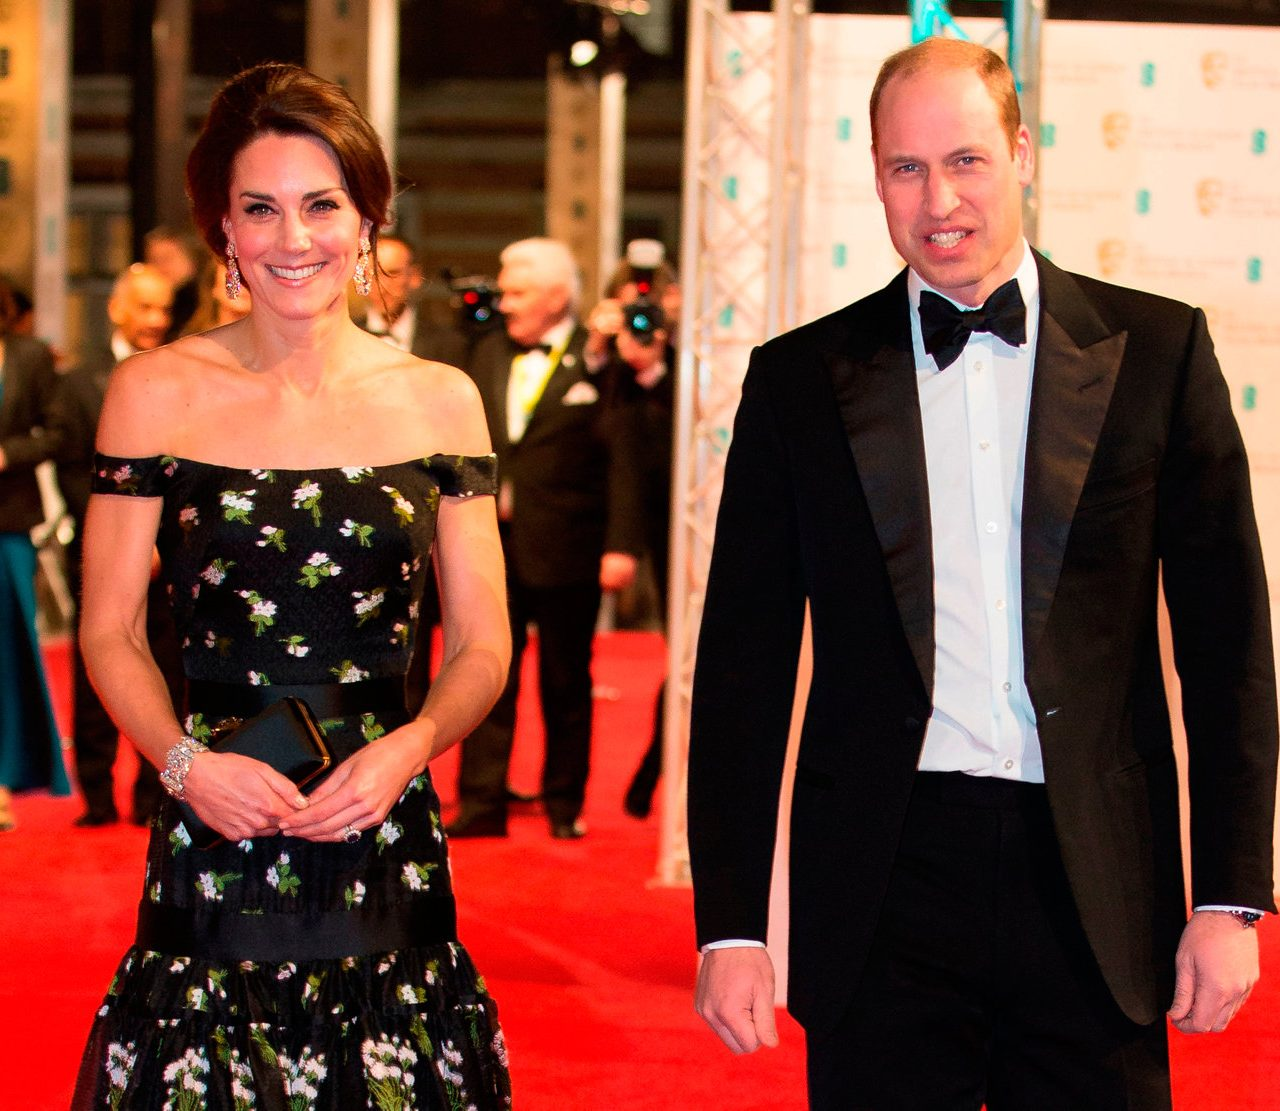 The Duke of Cambridge and the Duchess of Cambridge attended the British Academy Film Awards